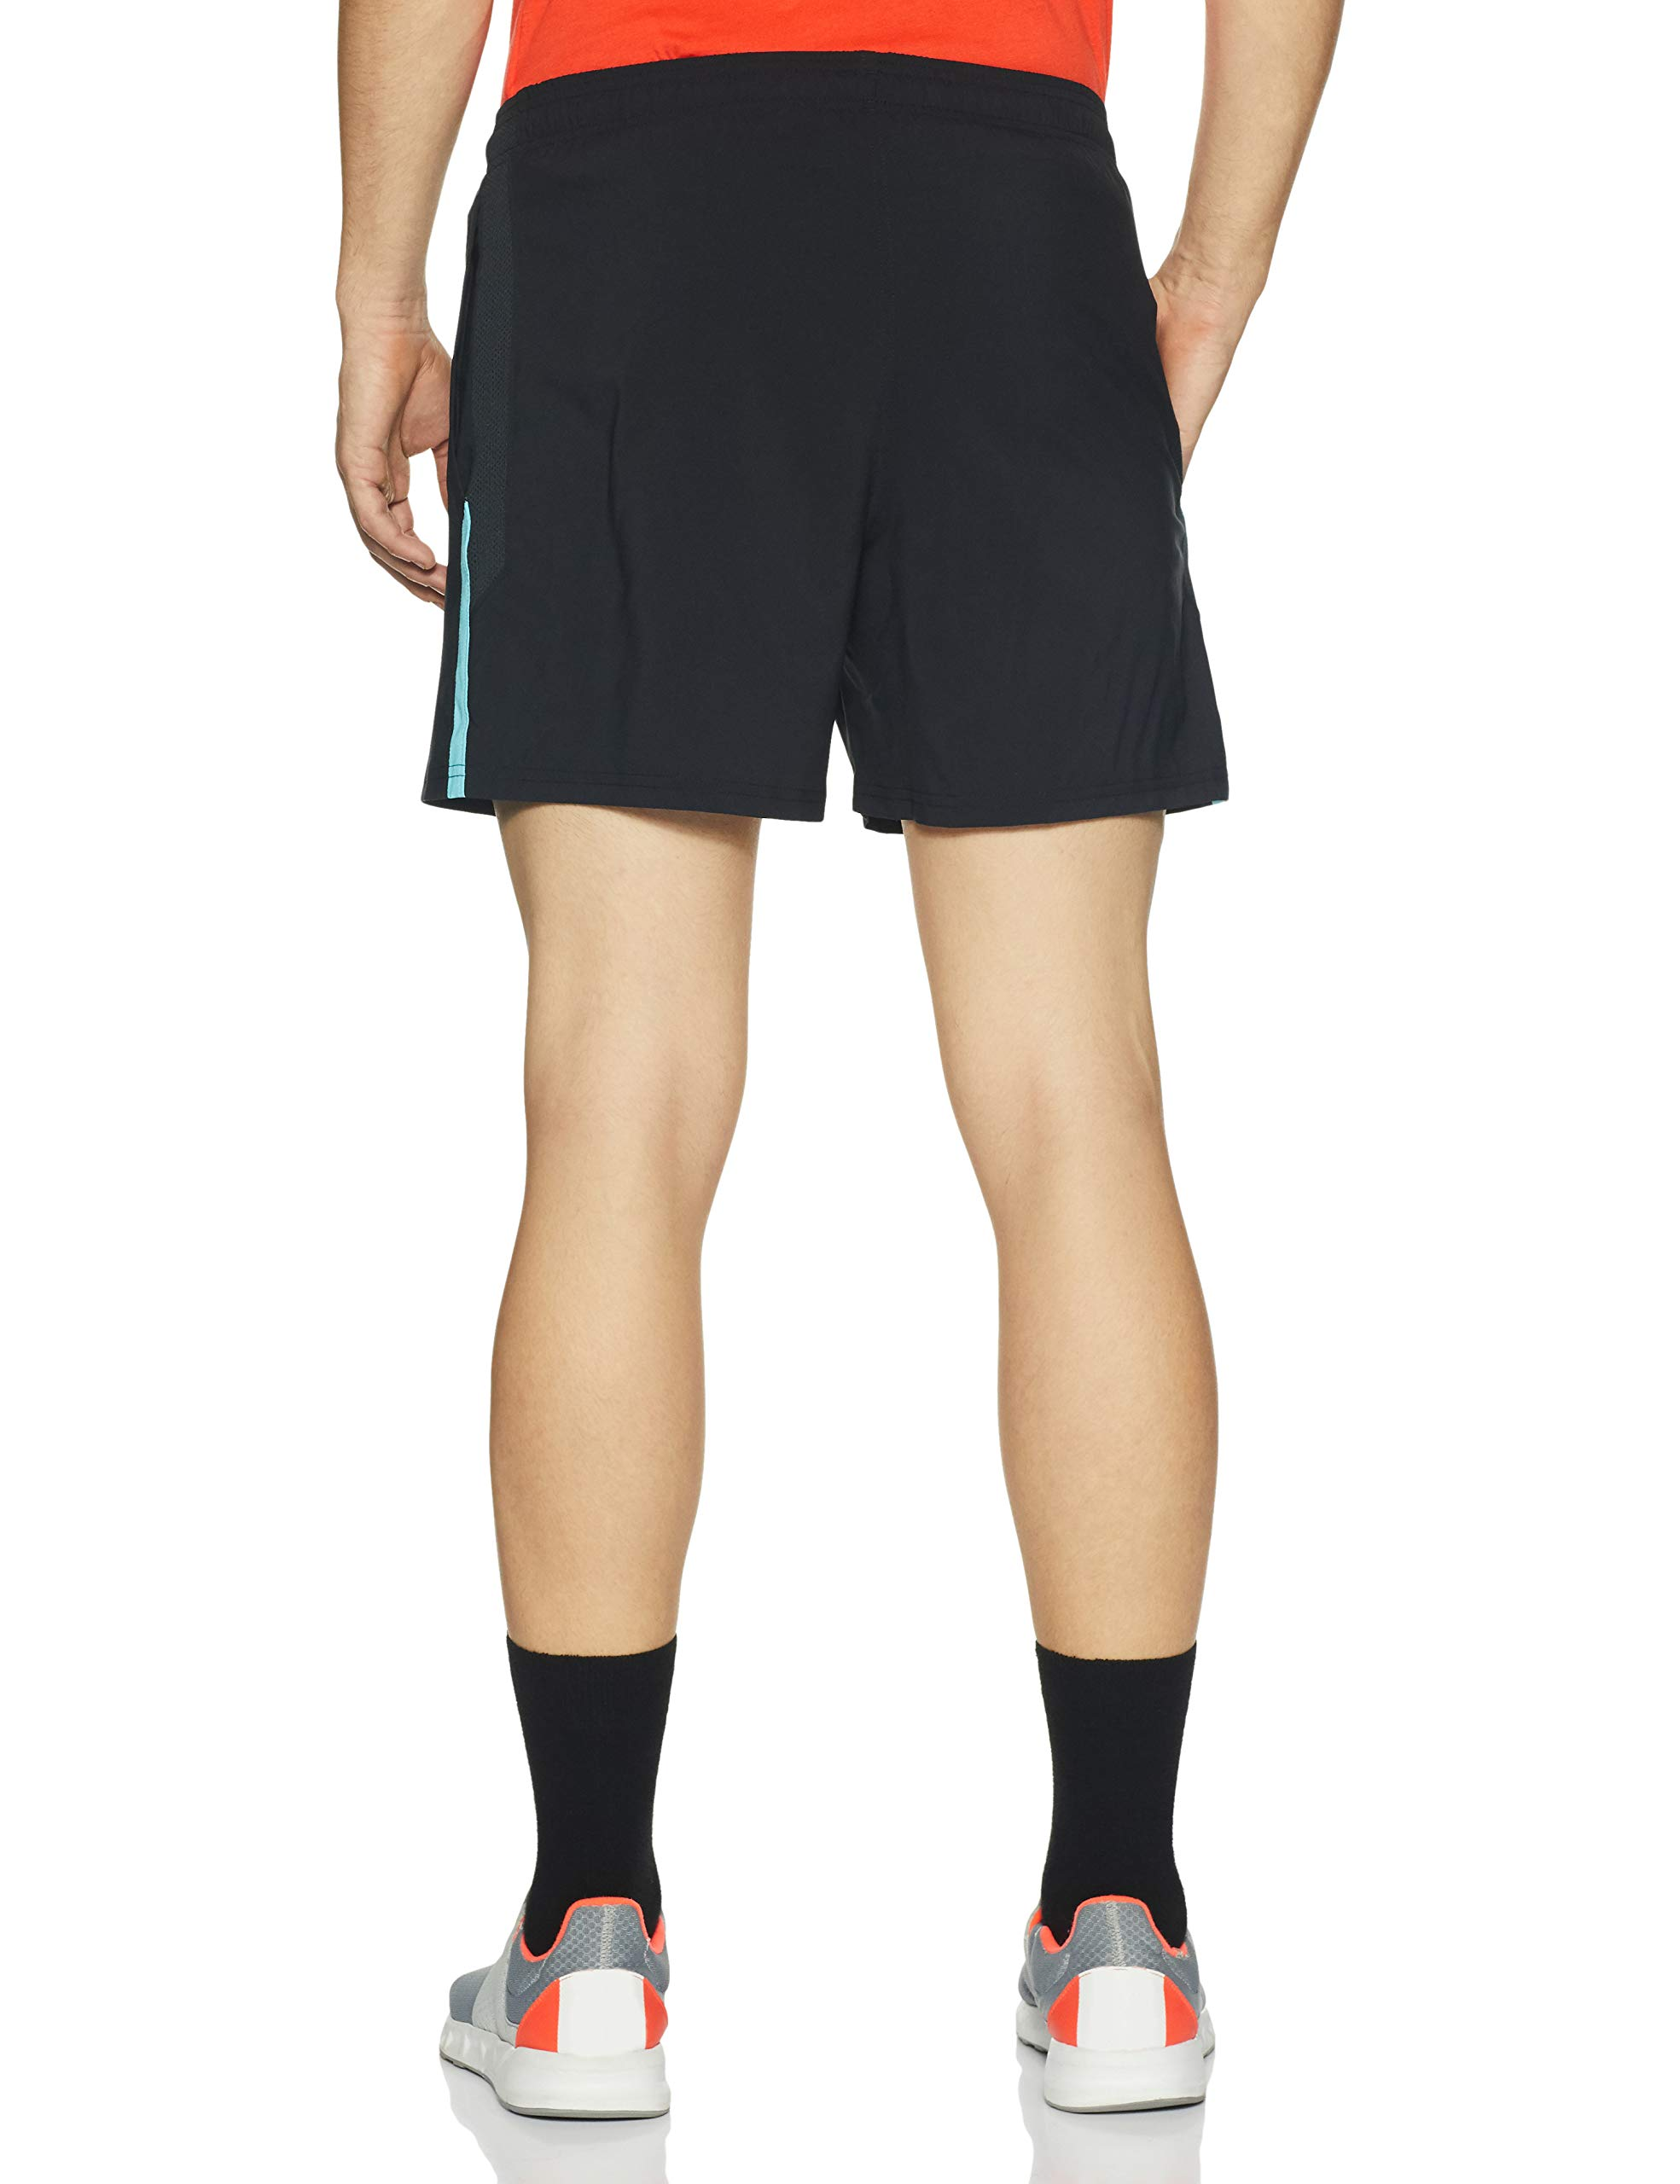 Under Armour Men's Launch SW 5'' Short, Black/Venetian Blue, X-Small by Under Armour (Image #2)